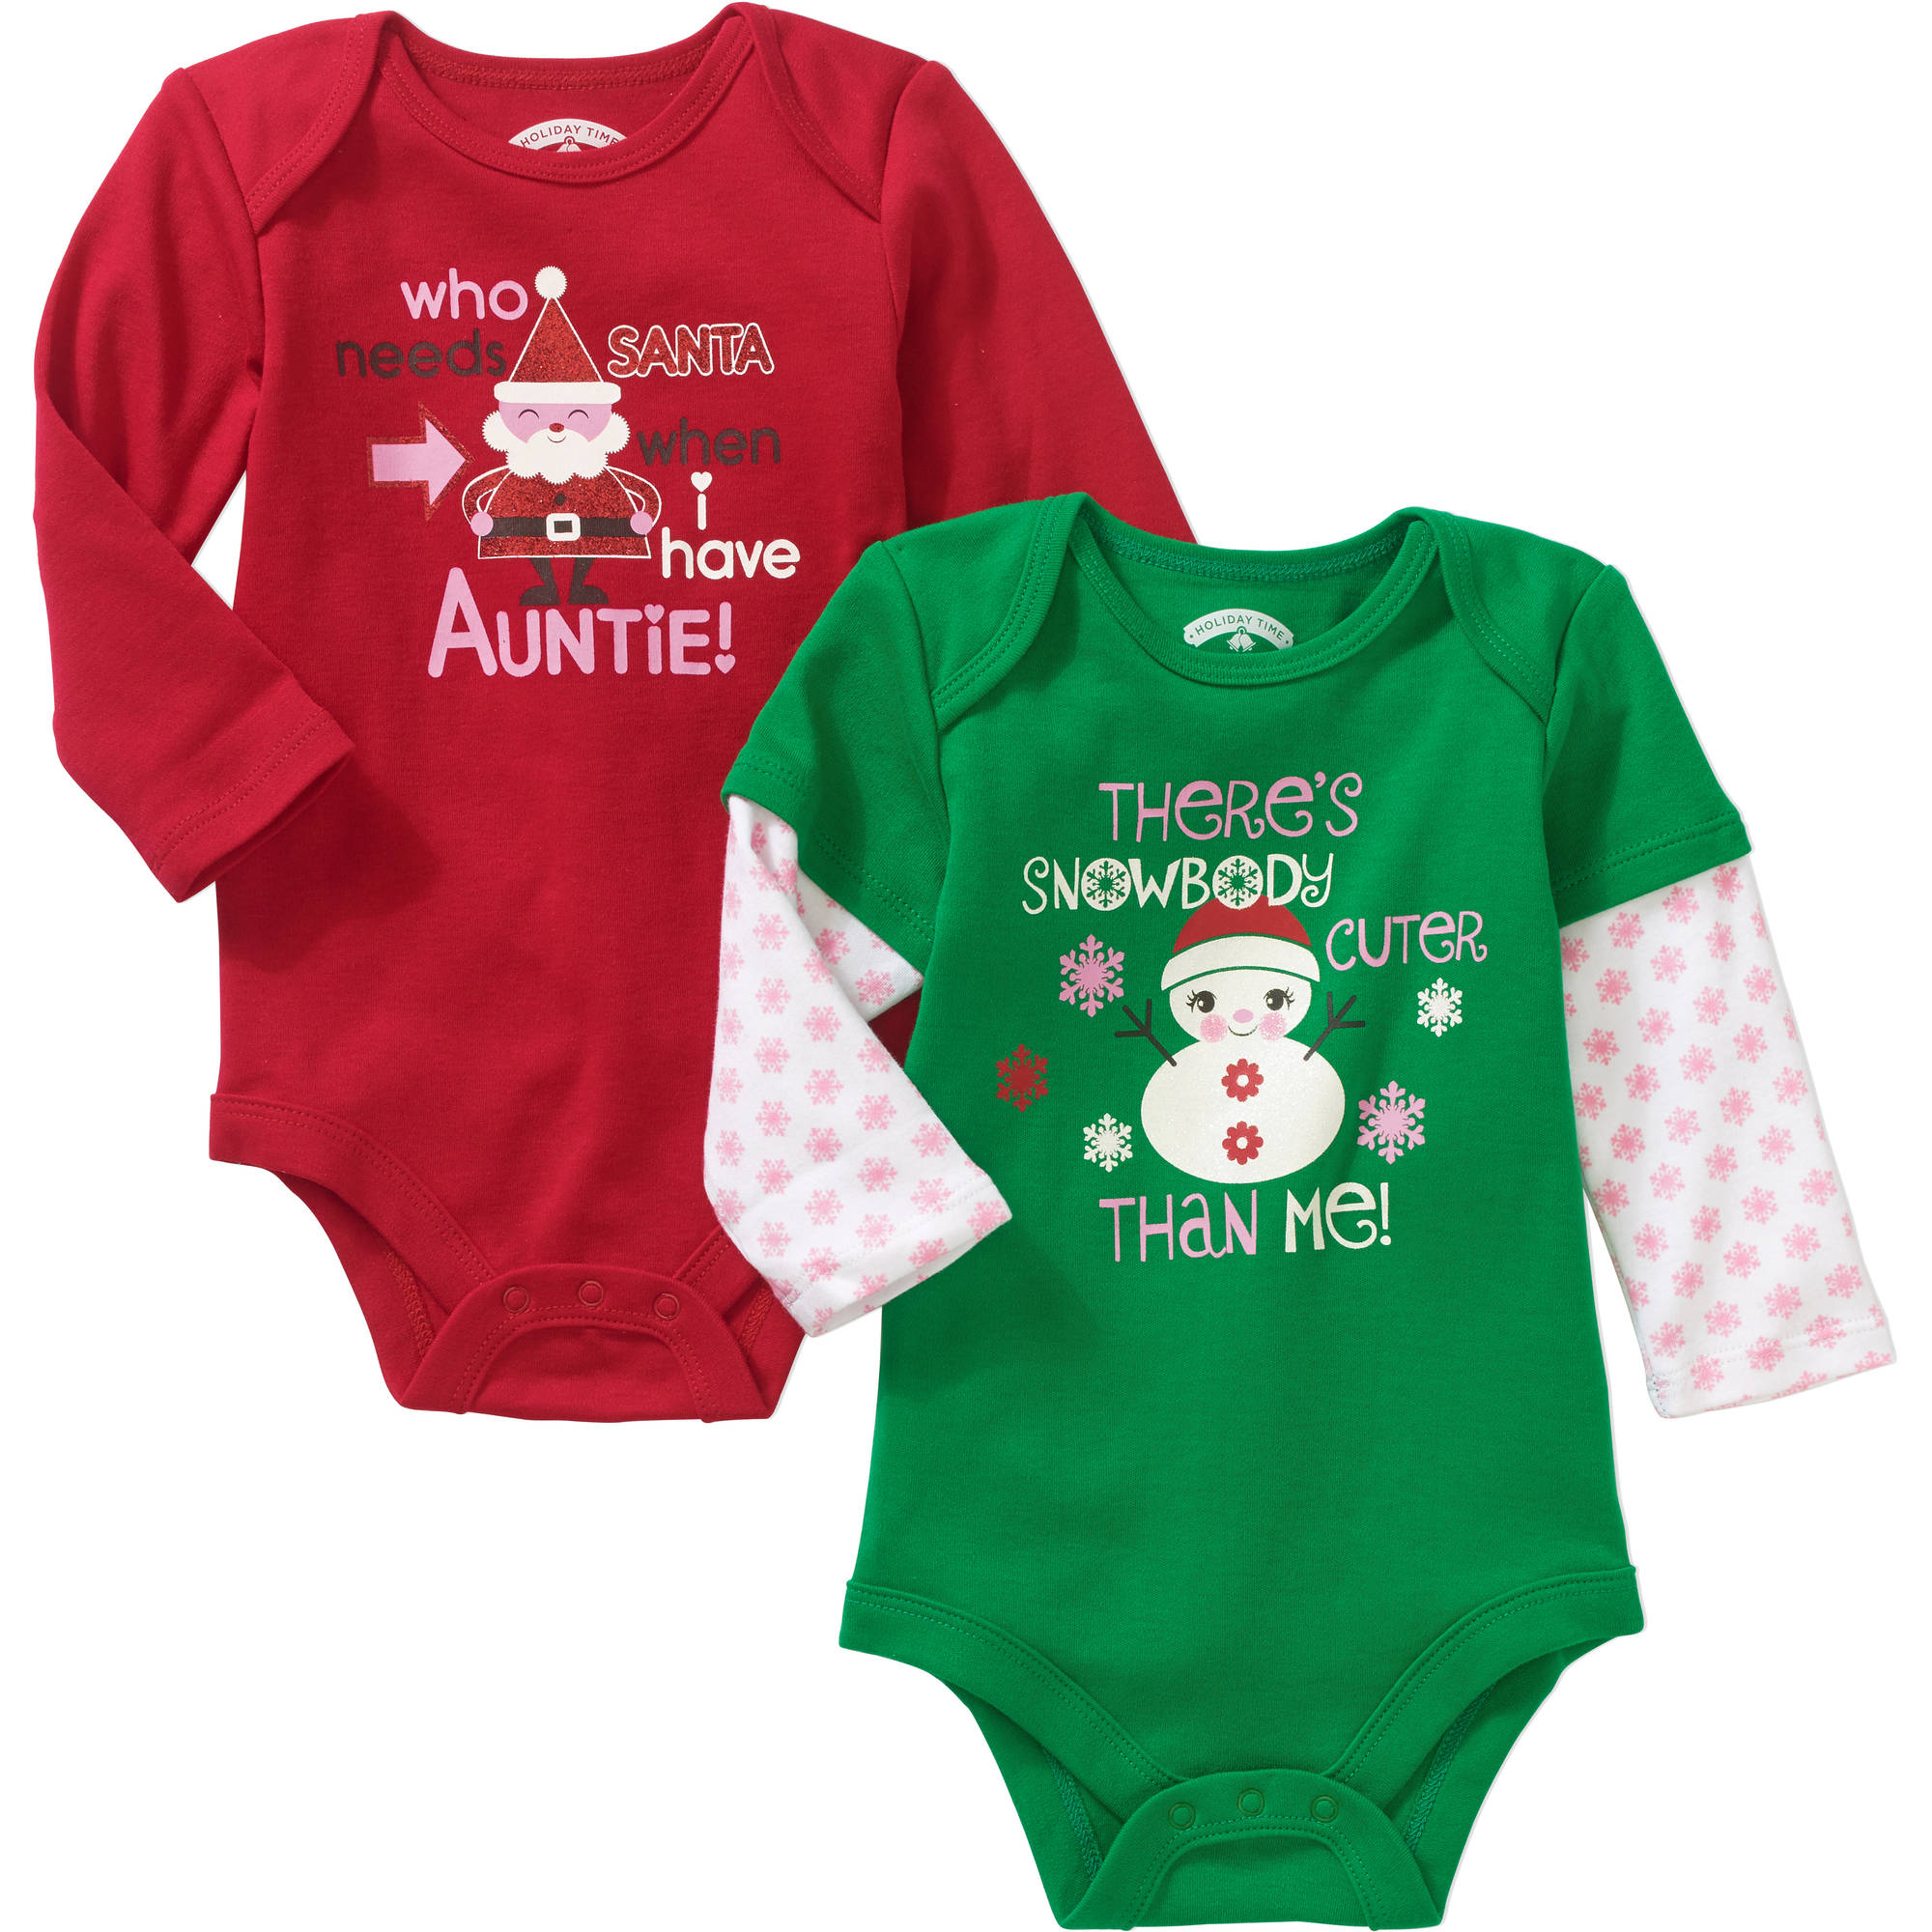 Christmas Newborn Baby Girl Auntie and Cuter Than Me Seasonal Bodysuit 2 pack